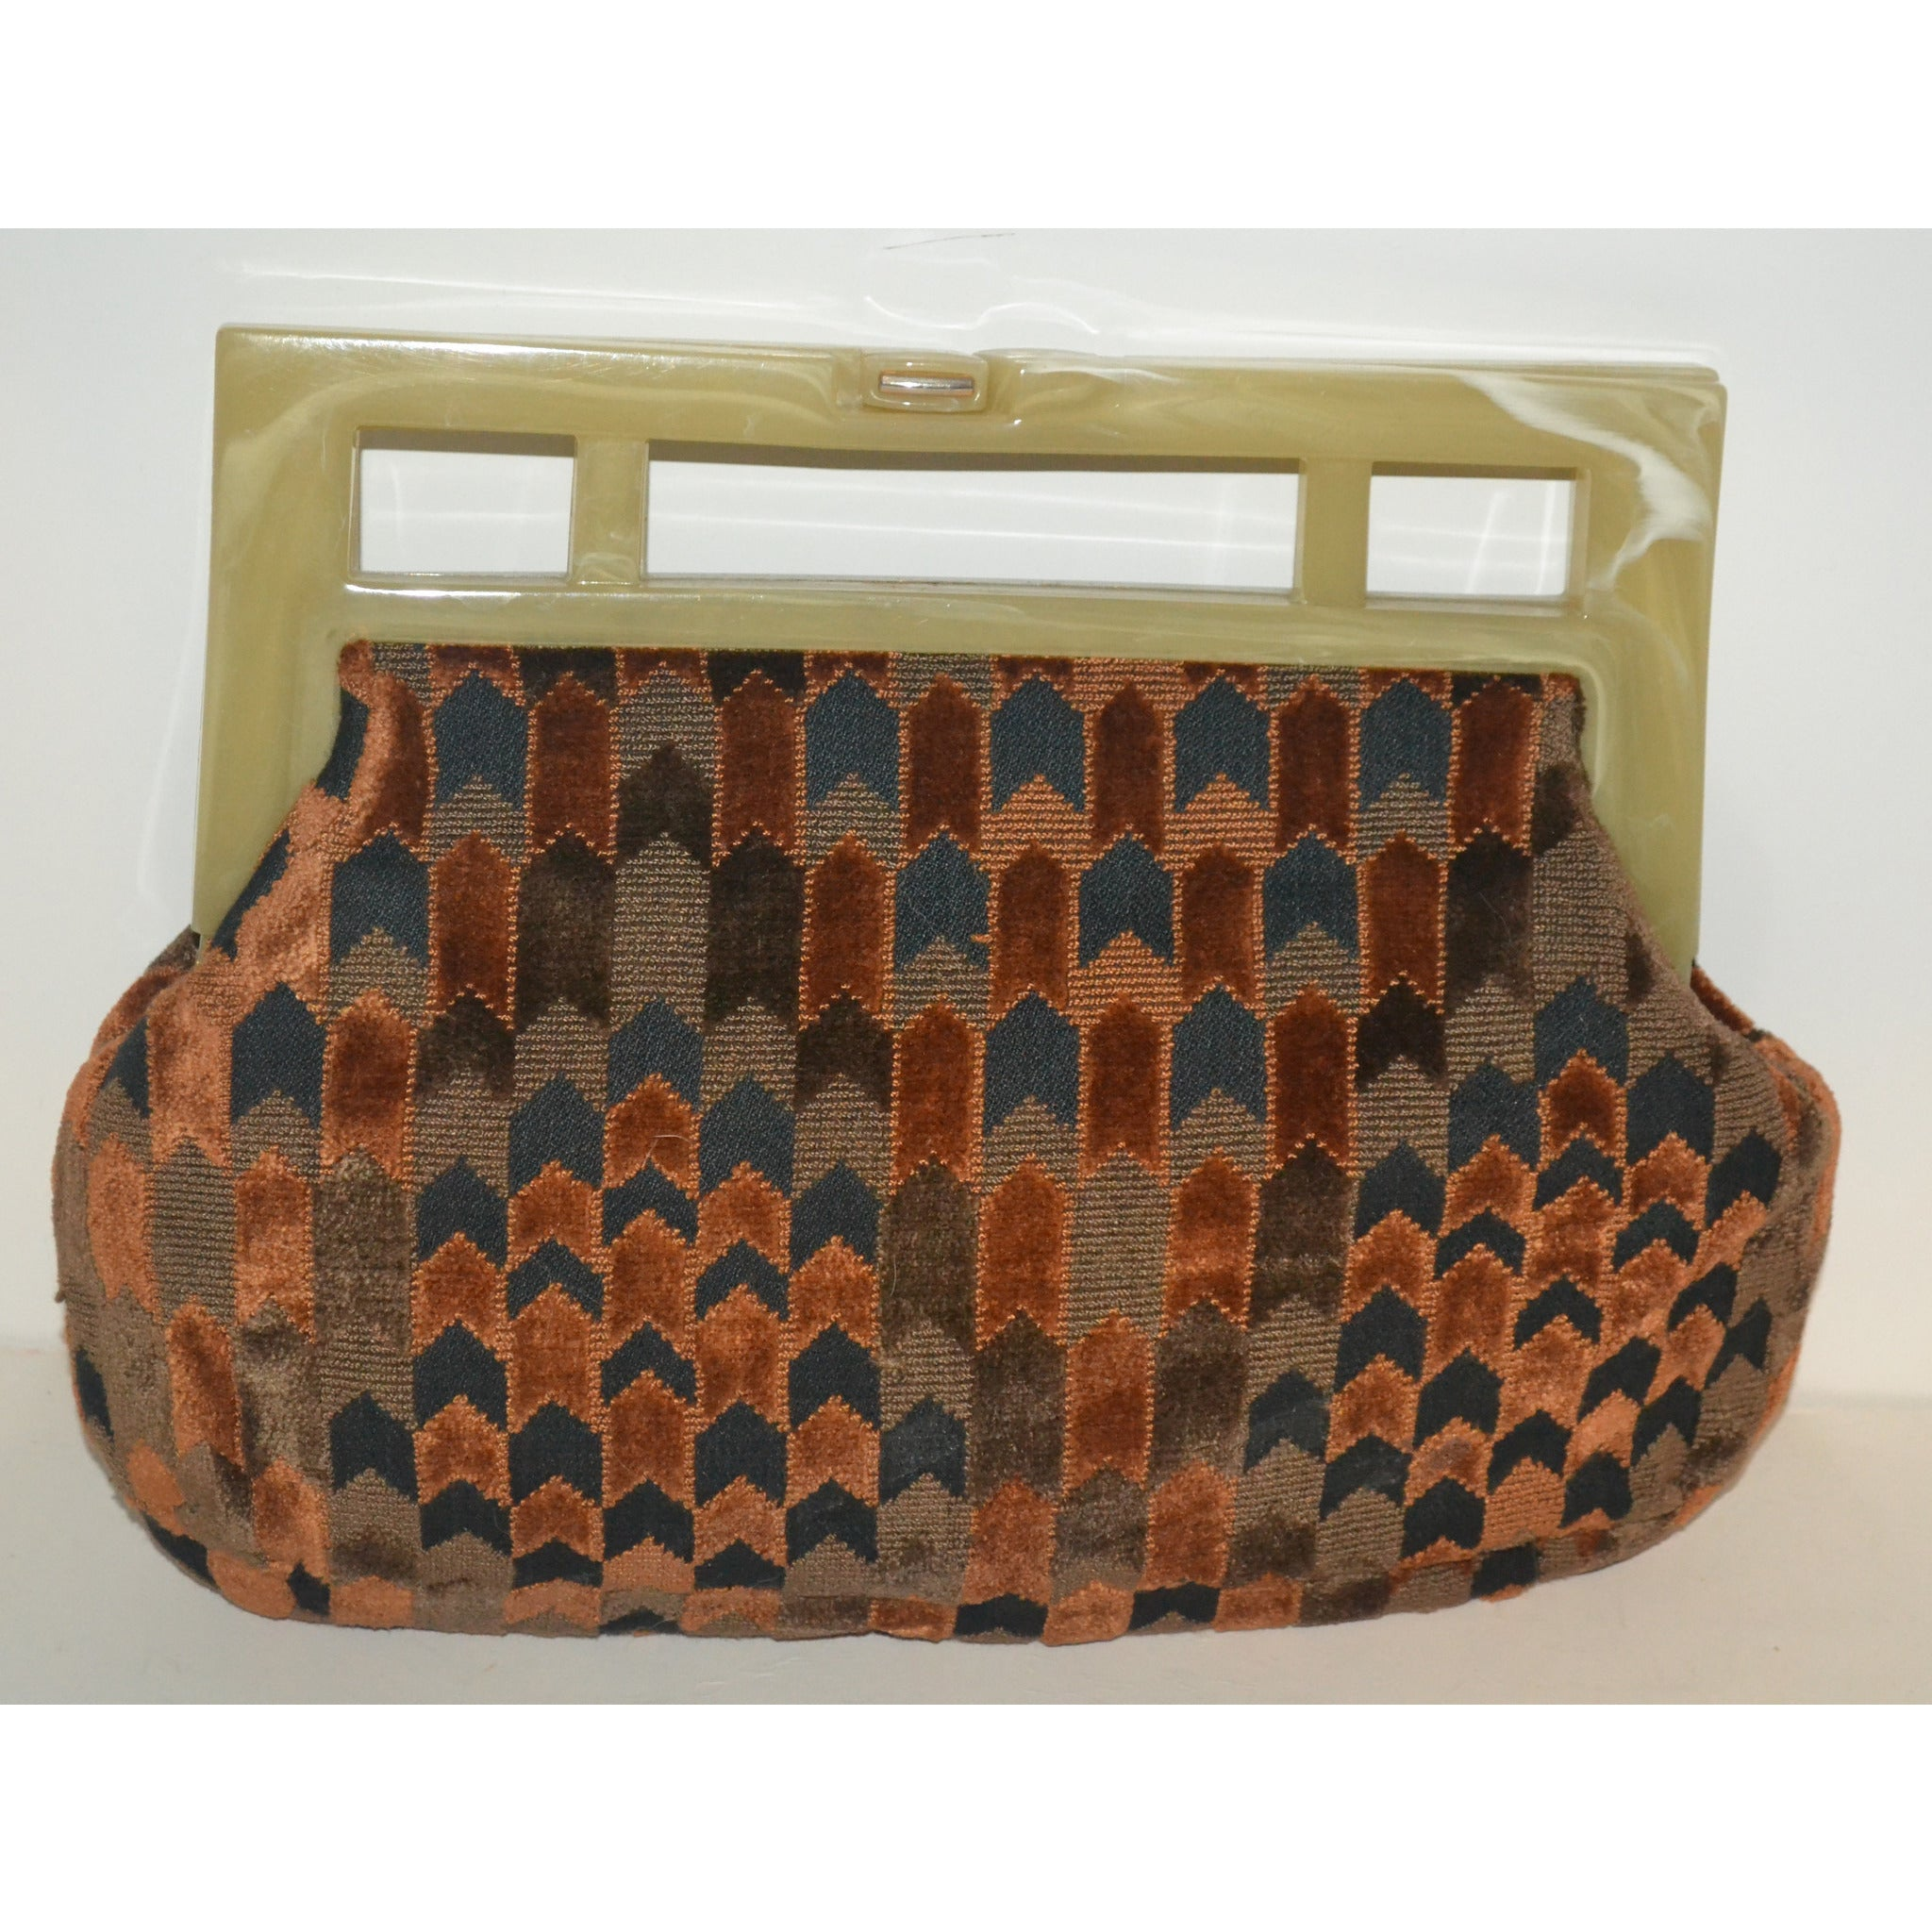 Vintage Lucite Framed Carpetbag Clutch Purse By Cara